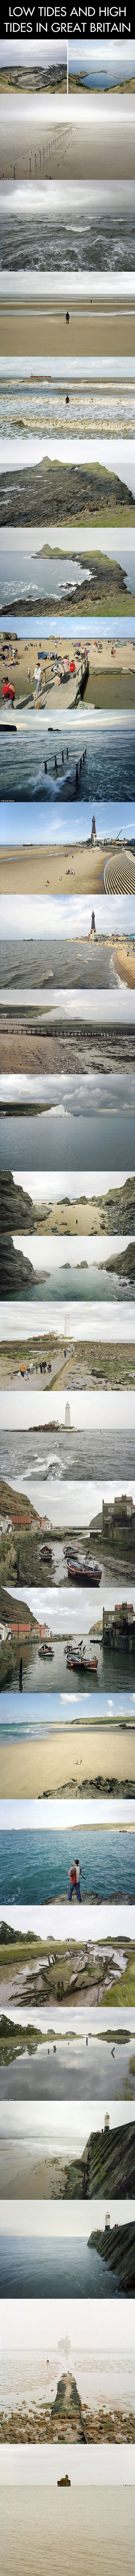 cool-Great-Britain-low-high-tides